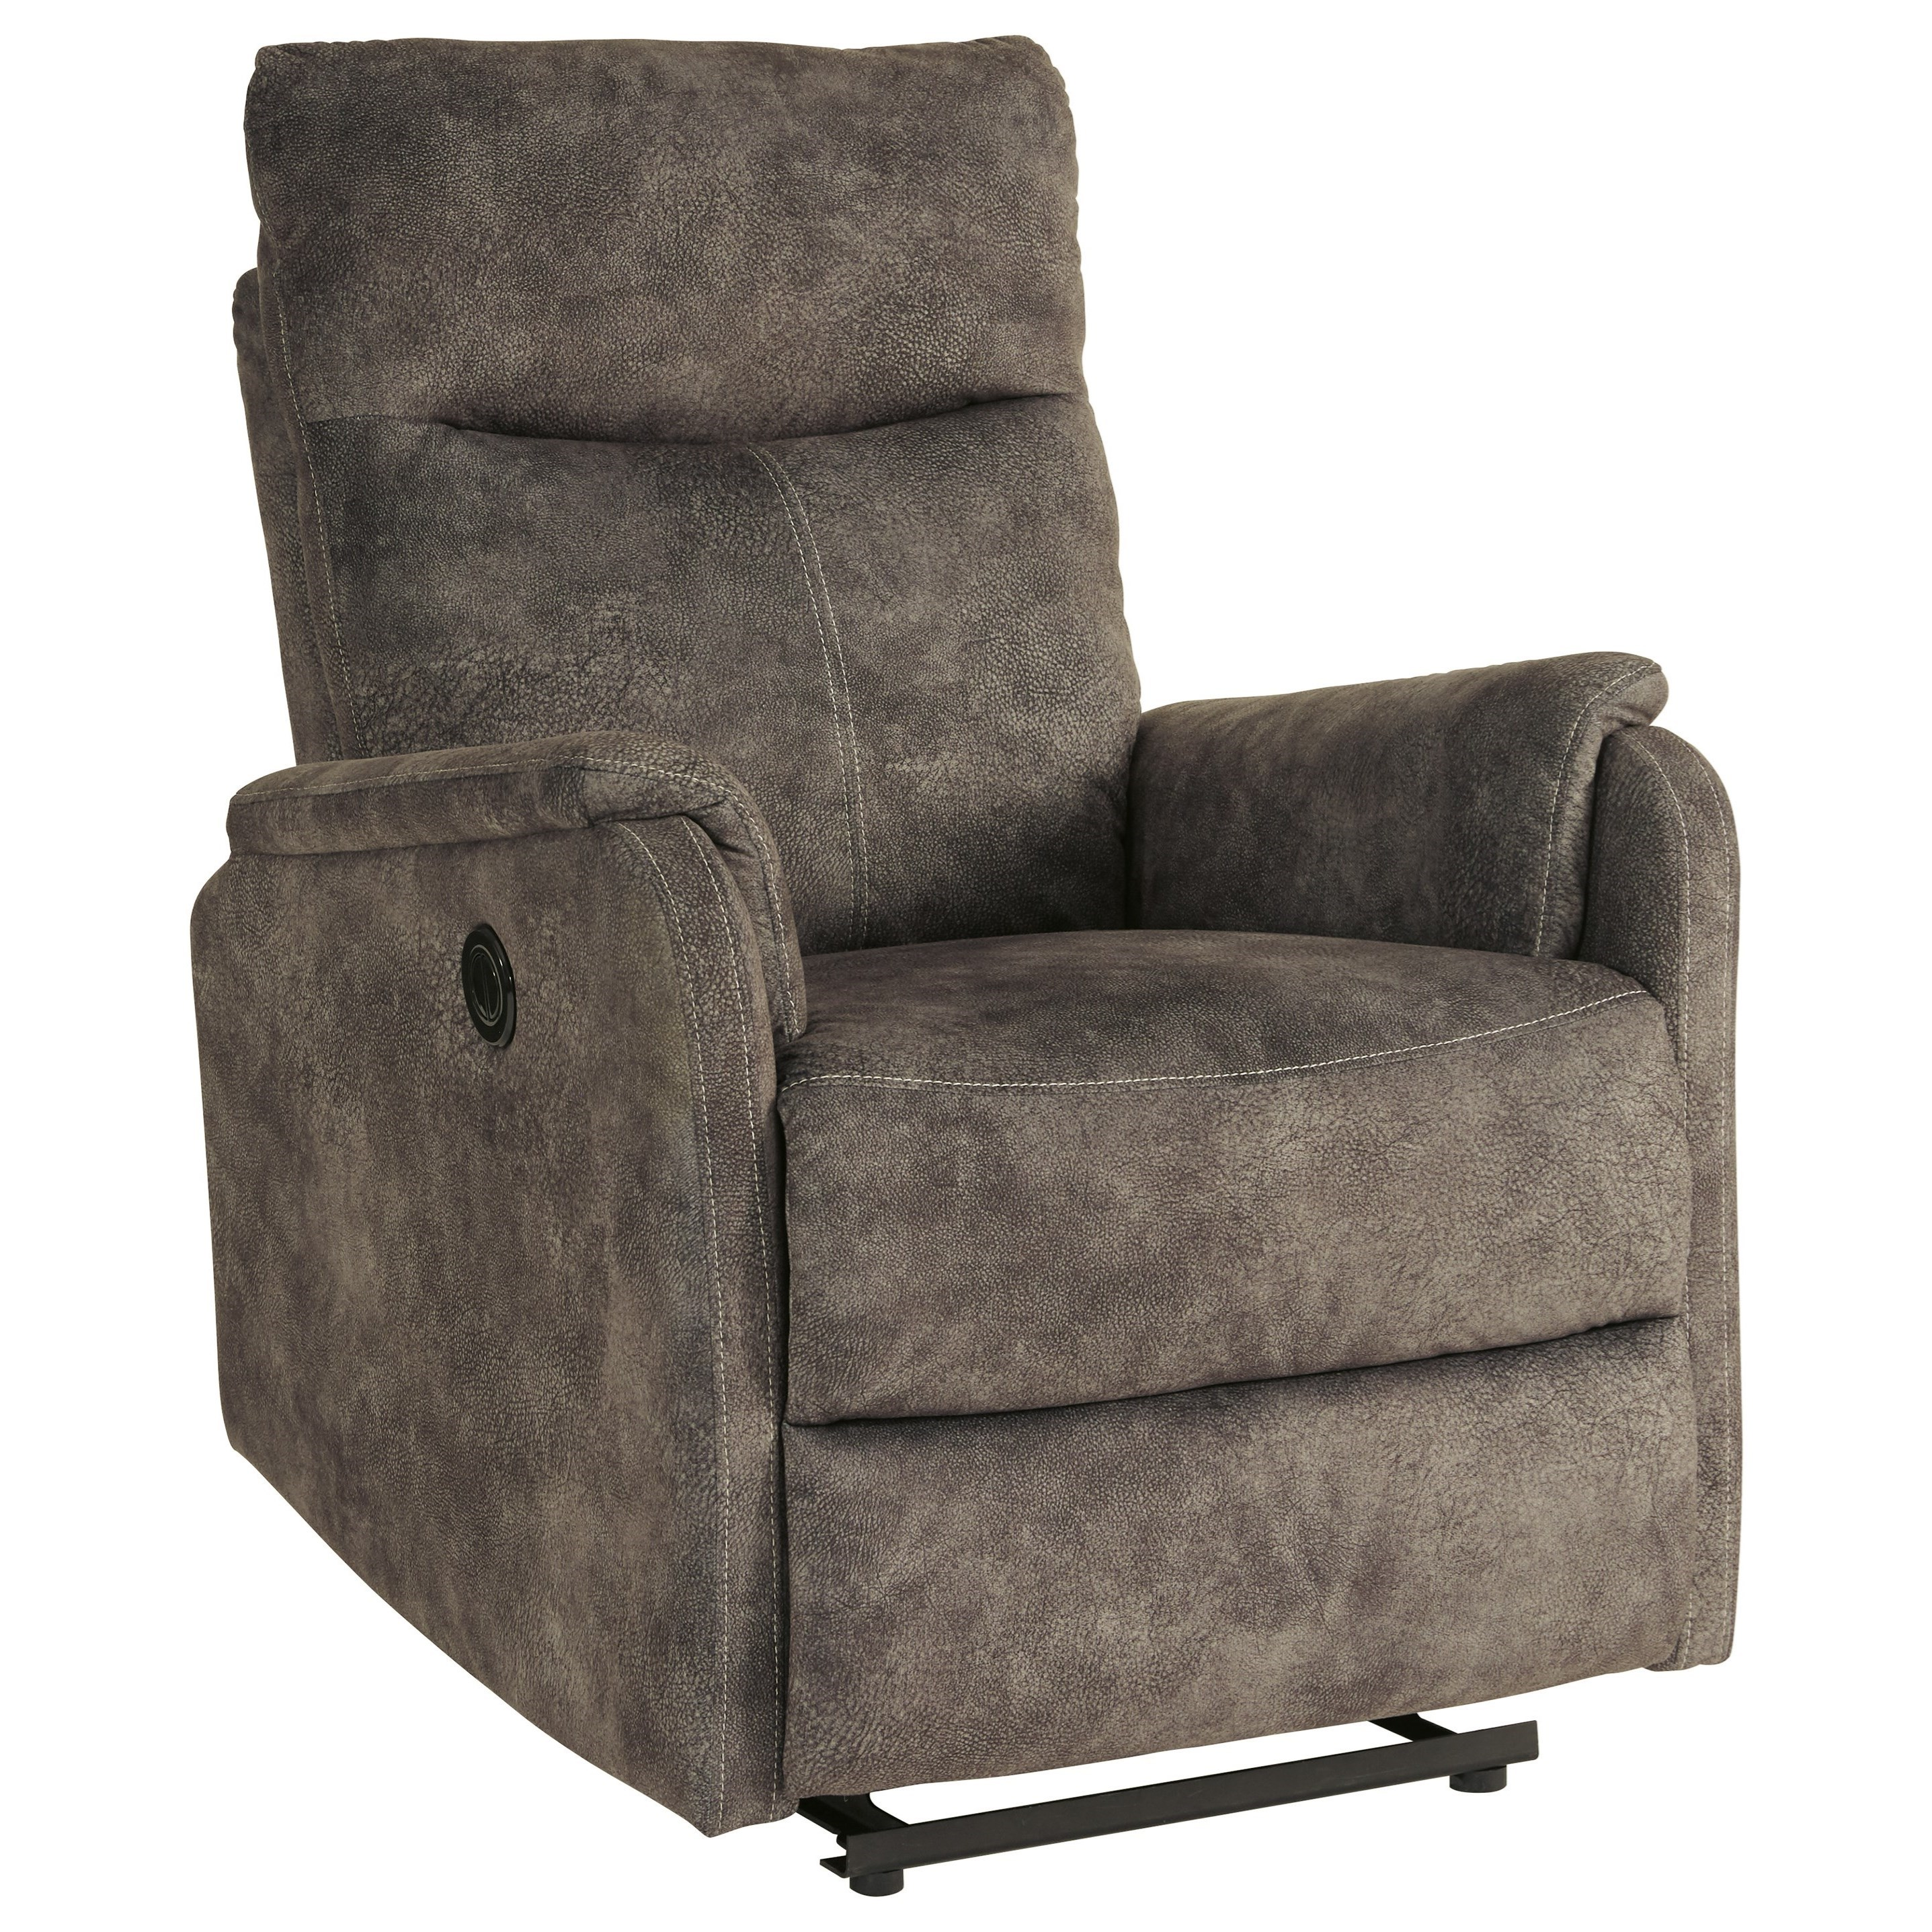 Signature Design by Ashley Torrox Power Recliner - Item Number: 3780206